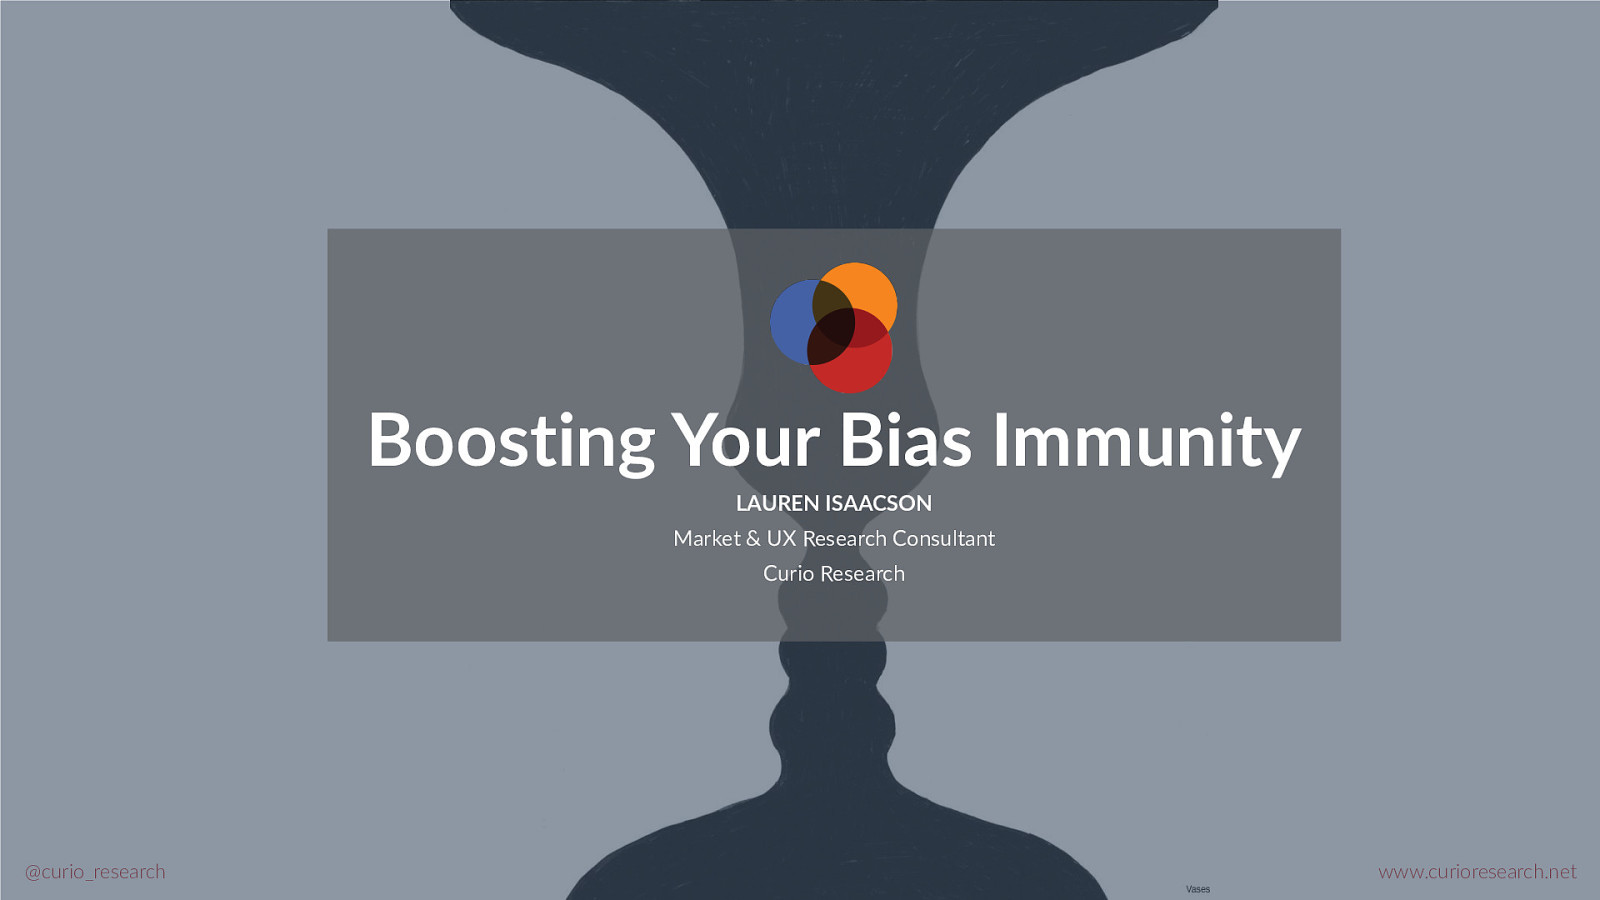 Boosting Your Bias Immunity